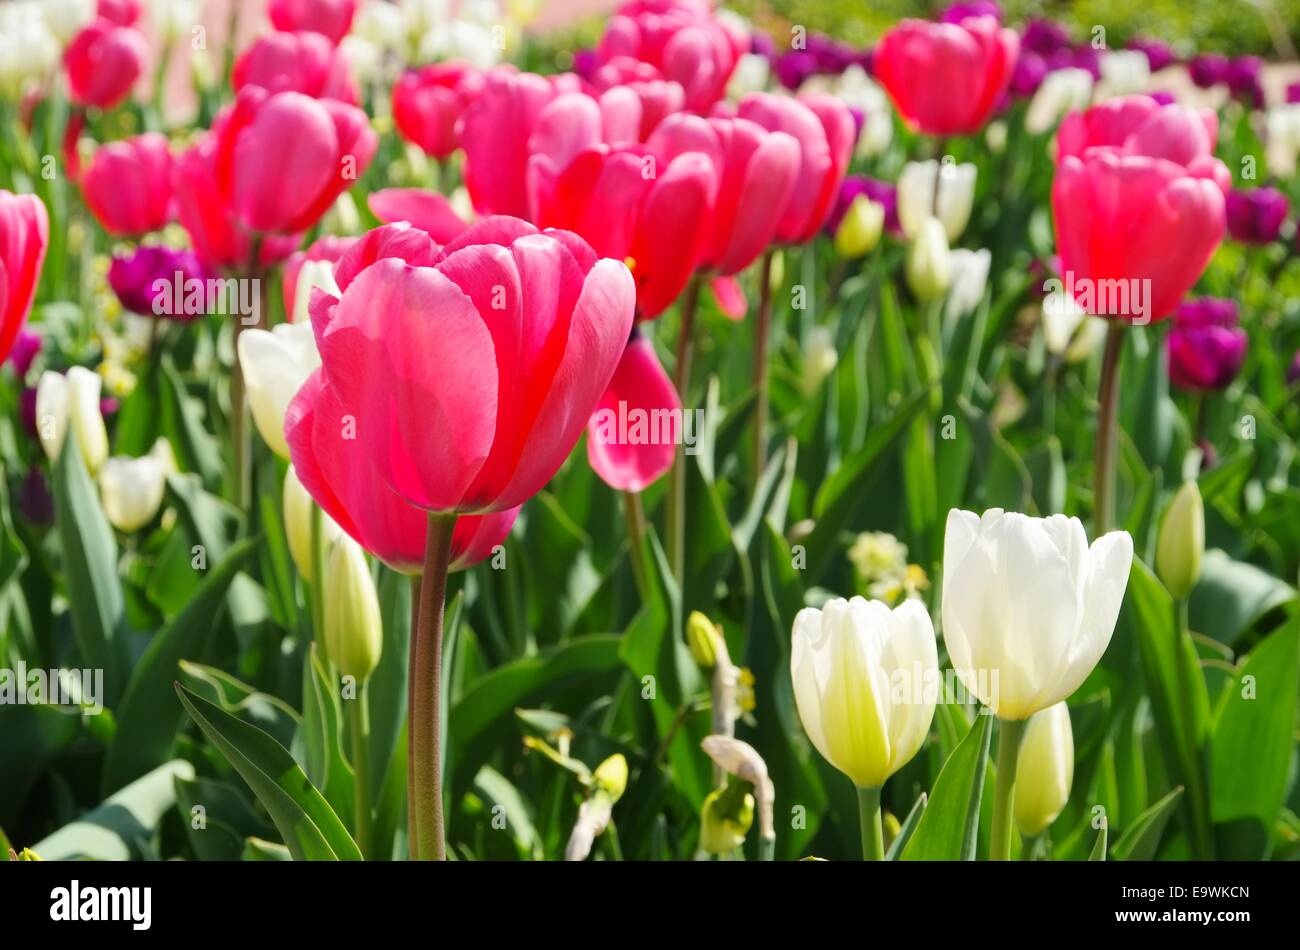 Tulpe rot weiss - tulip red white 01 - Stock Image